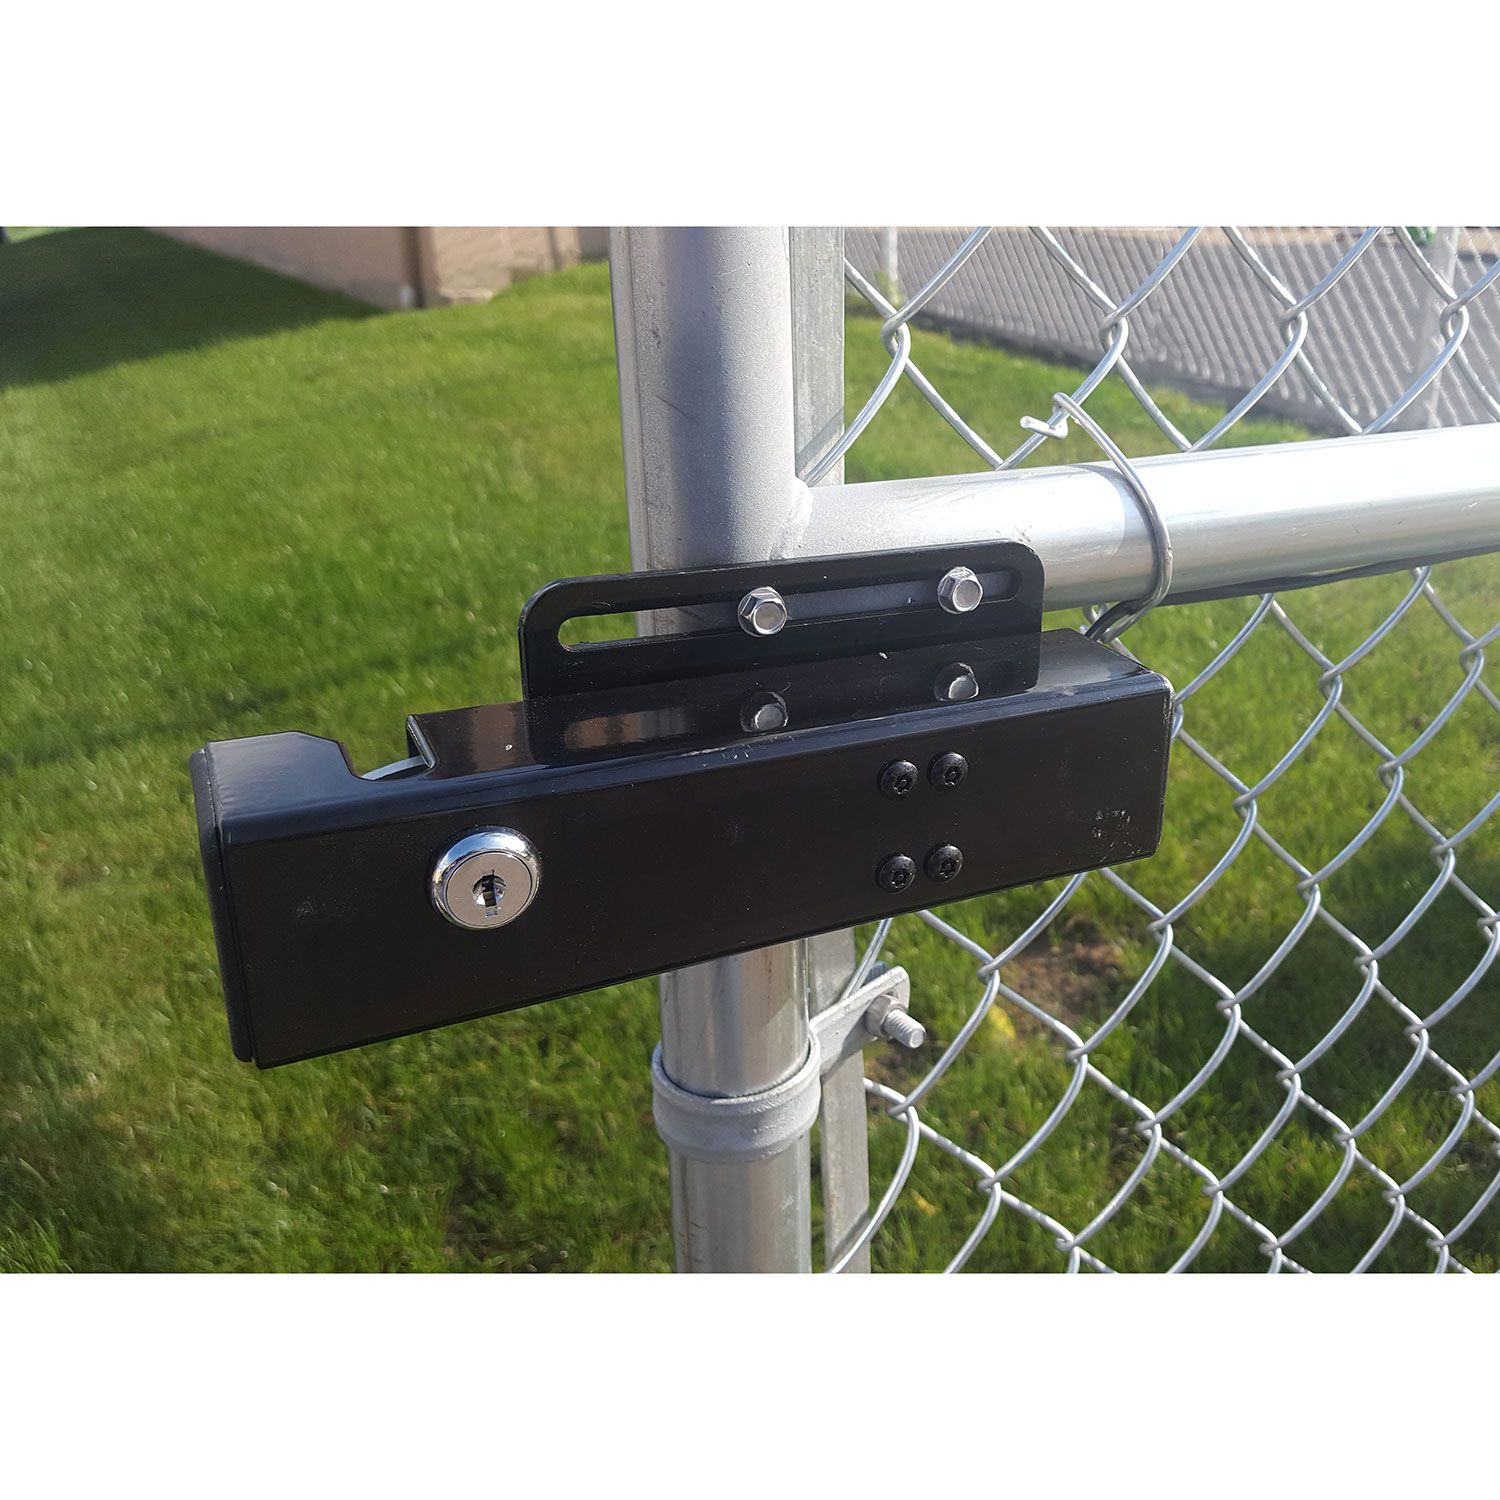 Gto Automatic Electric Gate Lock Hoover Fence Co